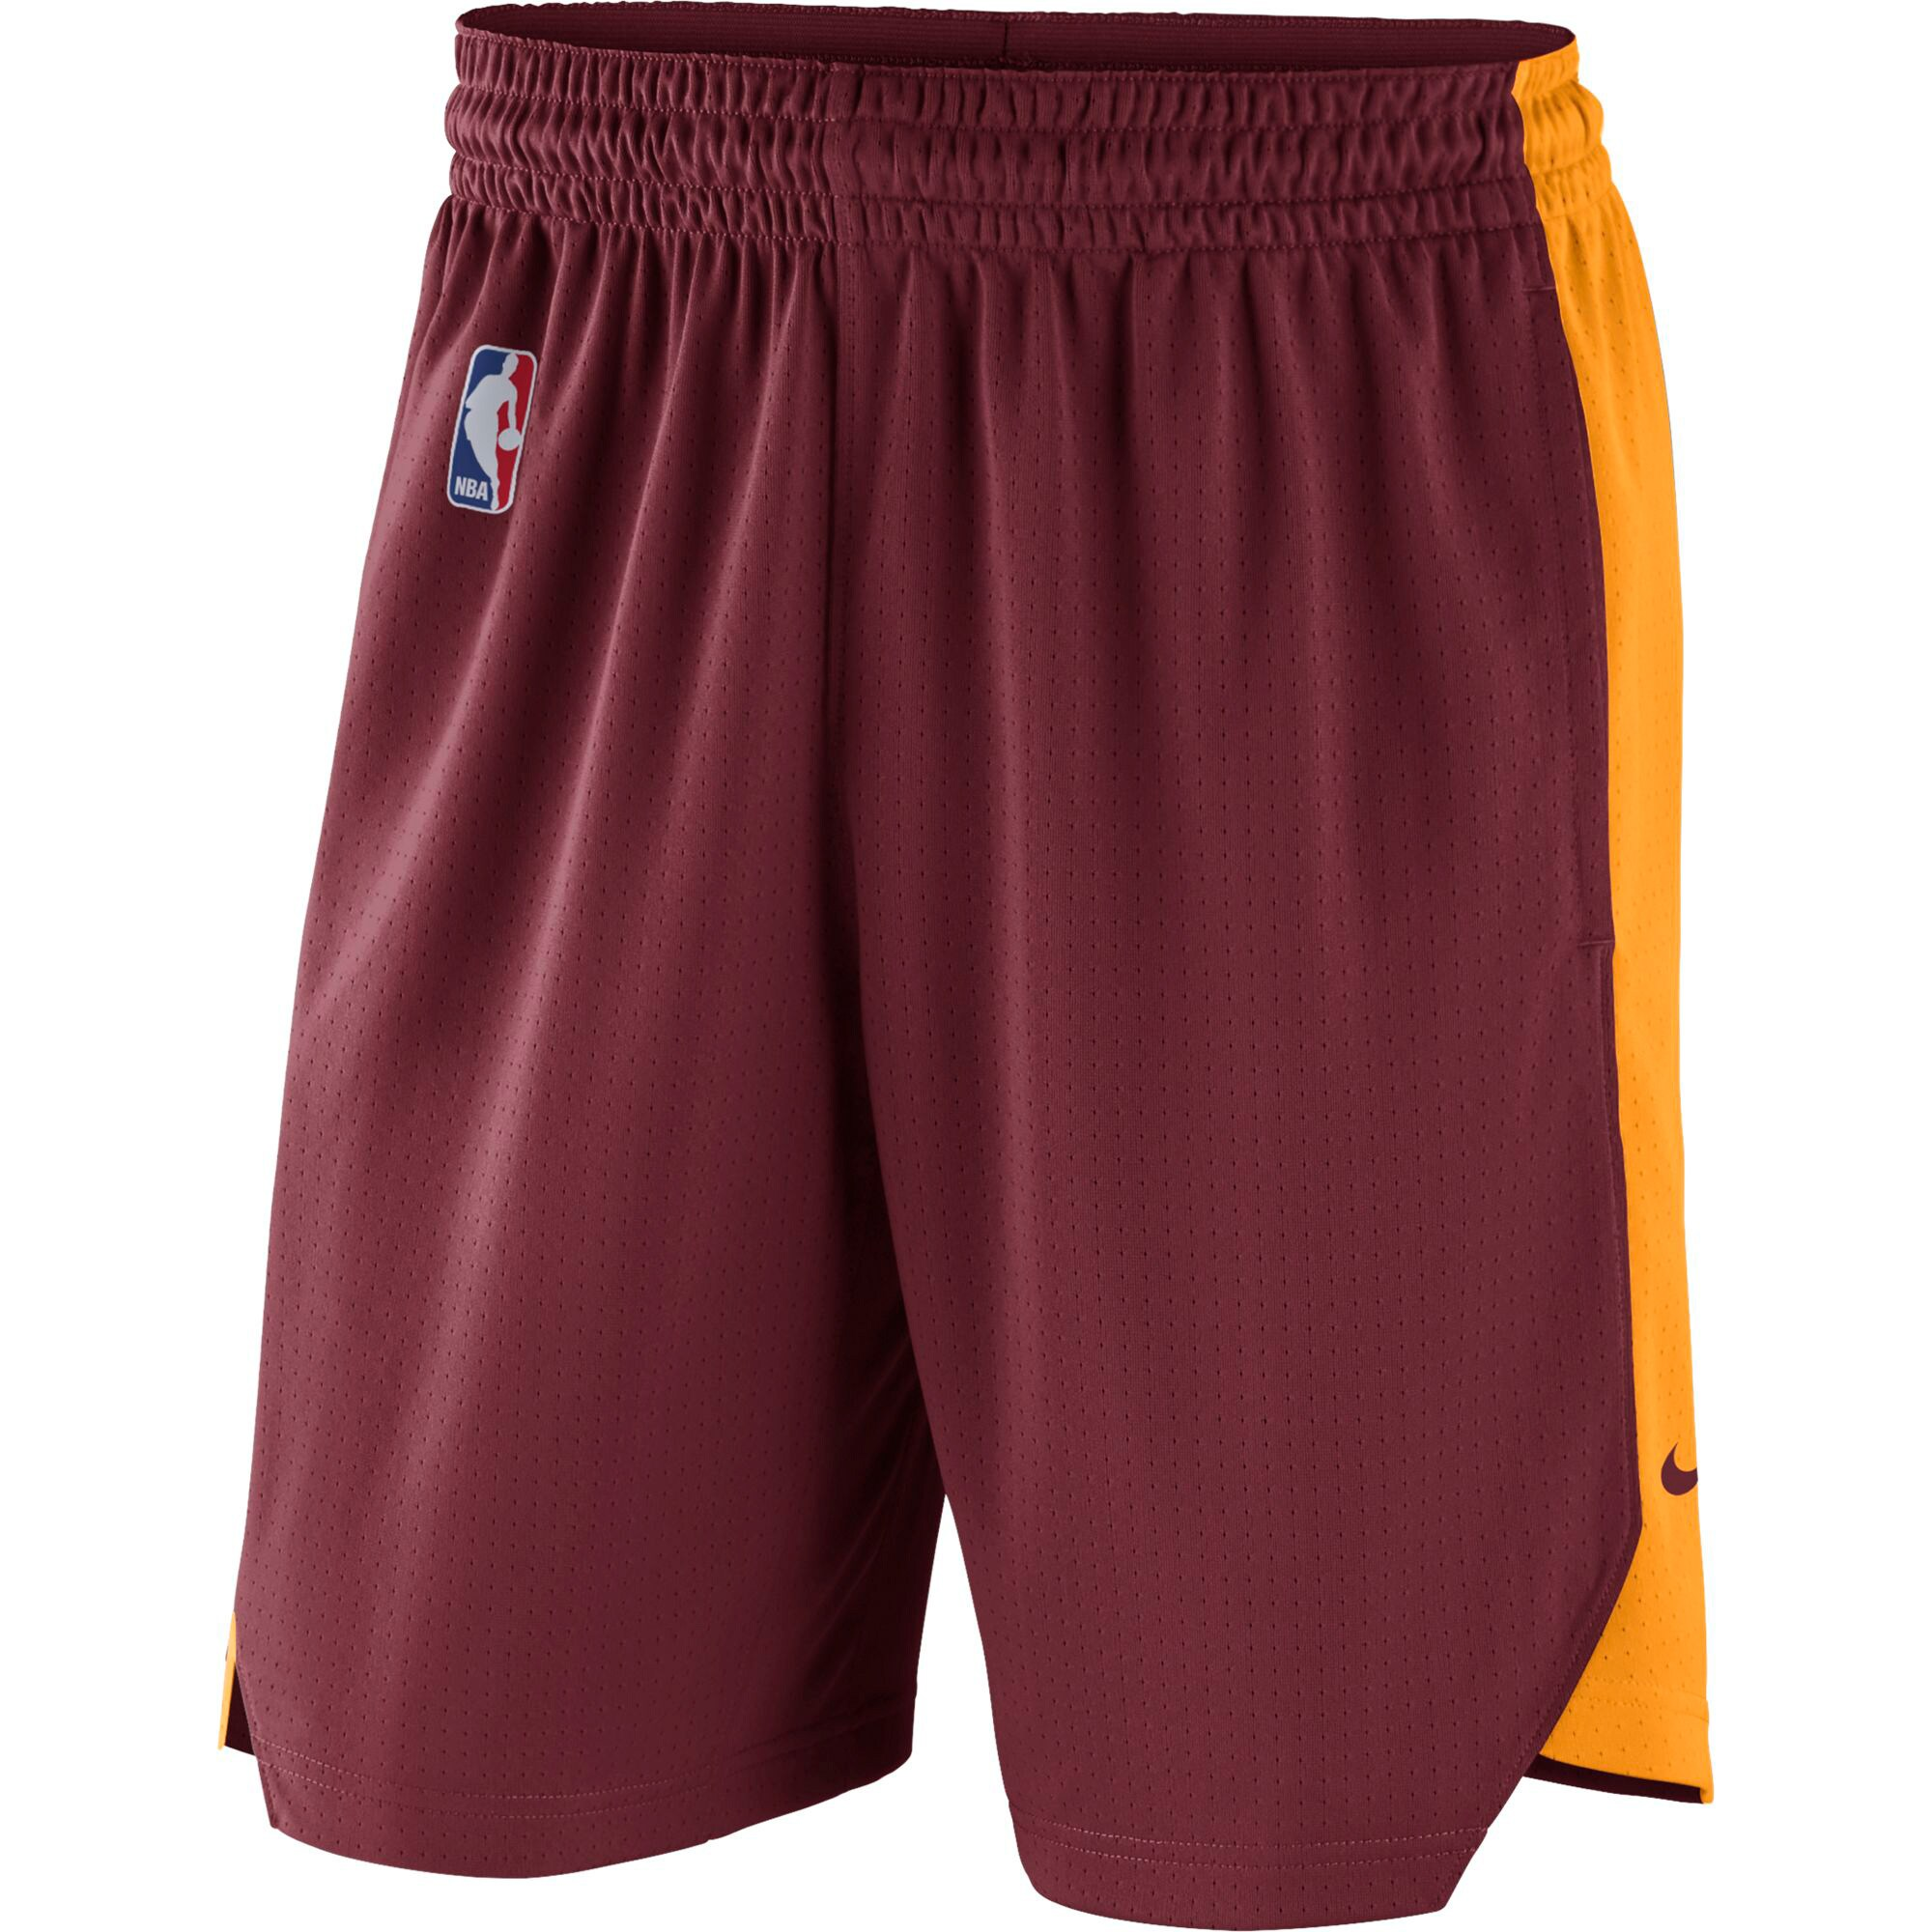 Cleveland Cavaliers Nike Practice Performance Shorts - Maroon